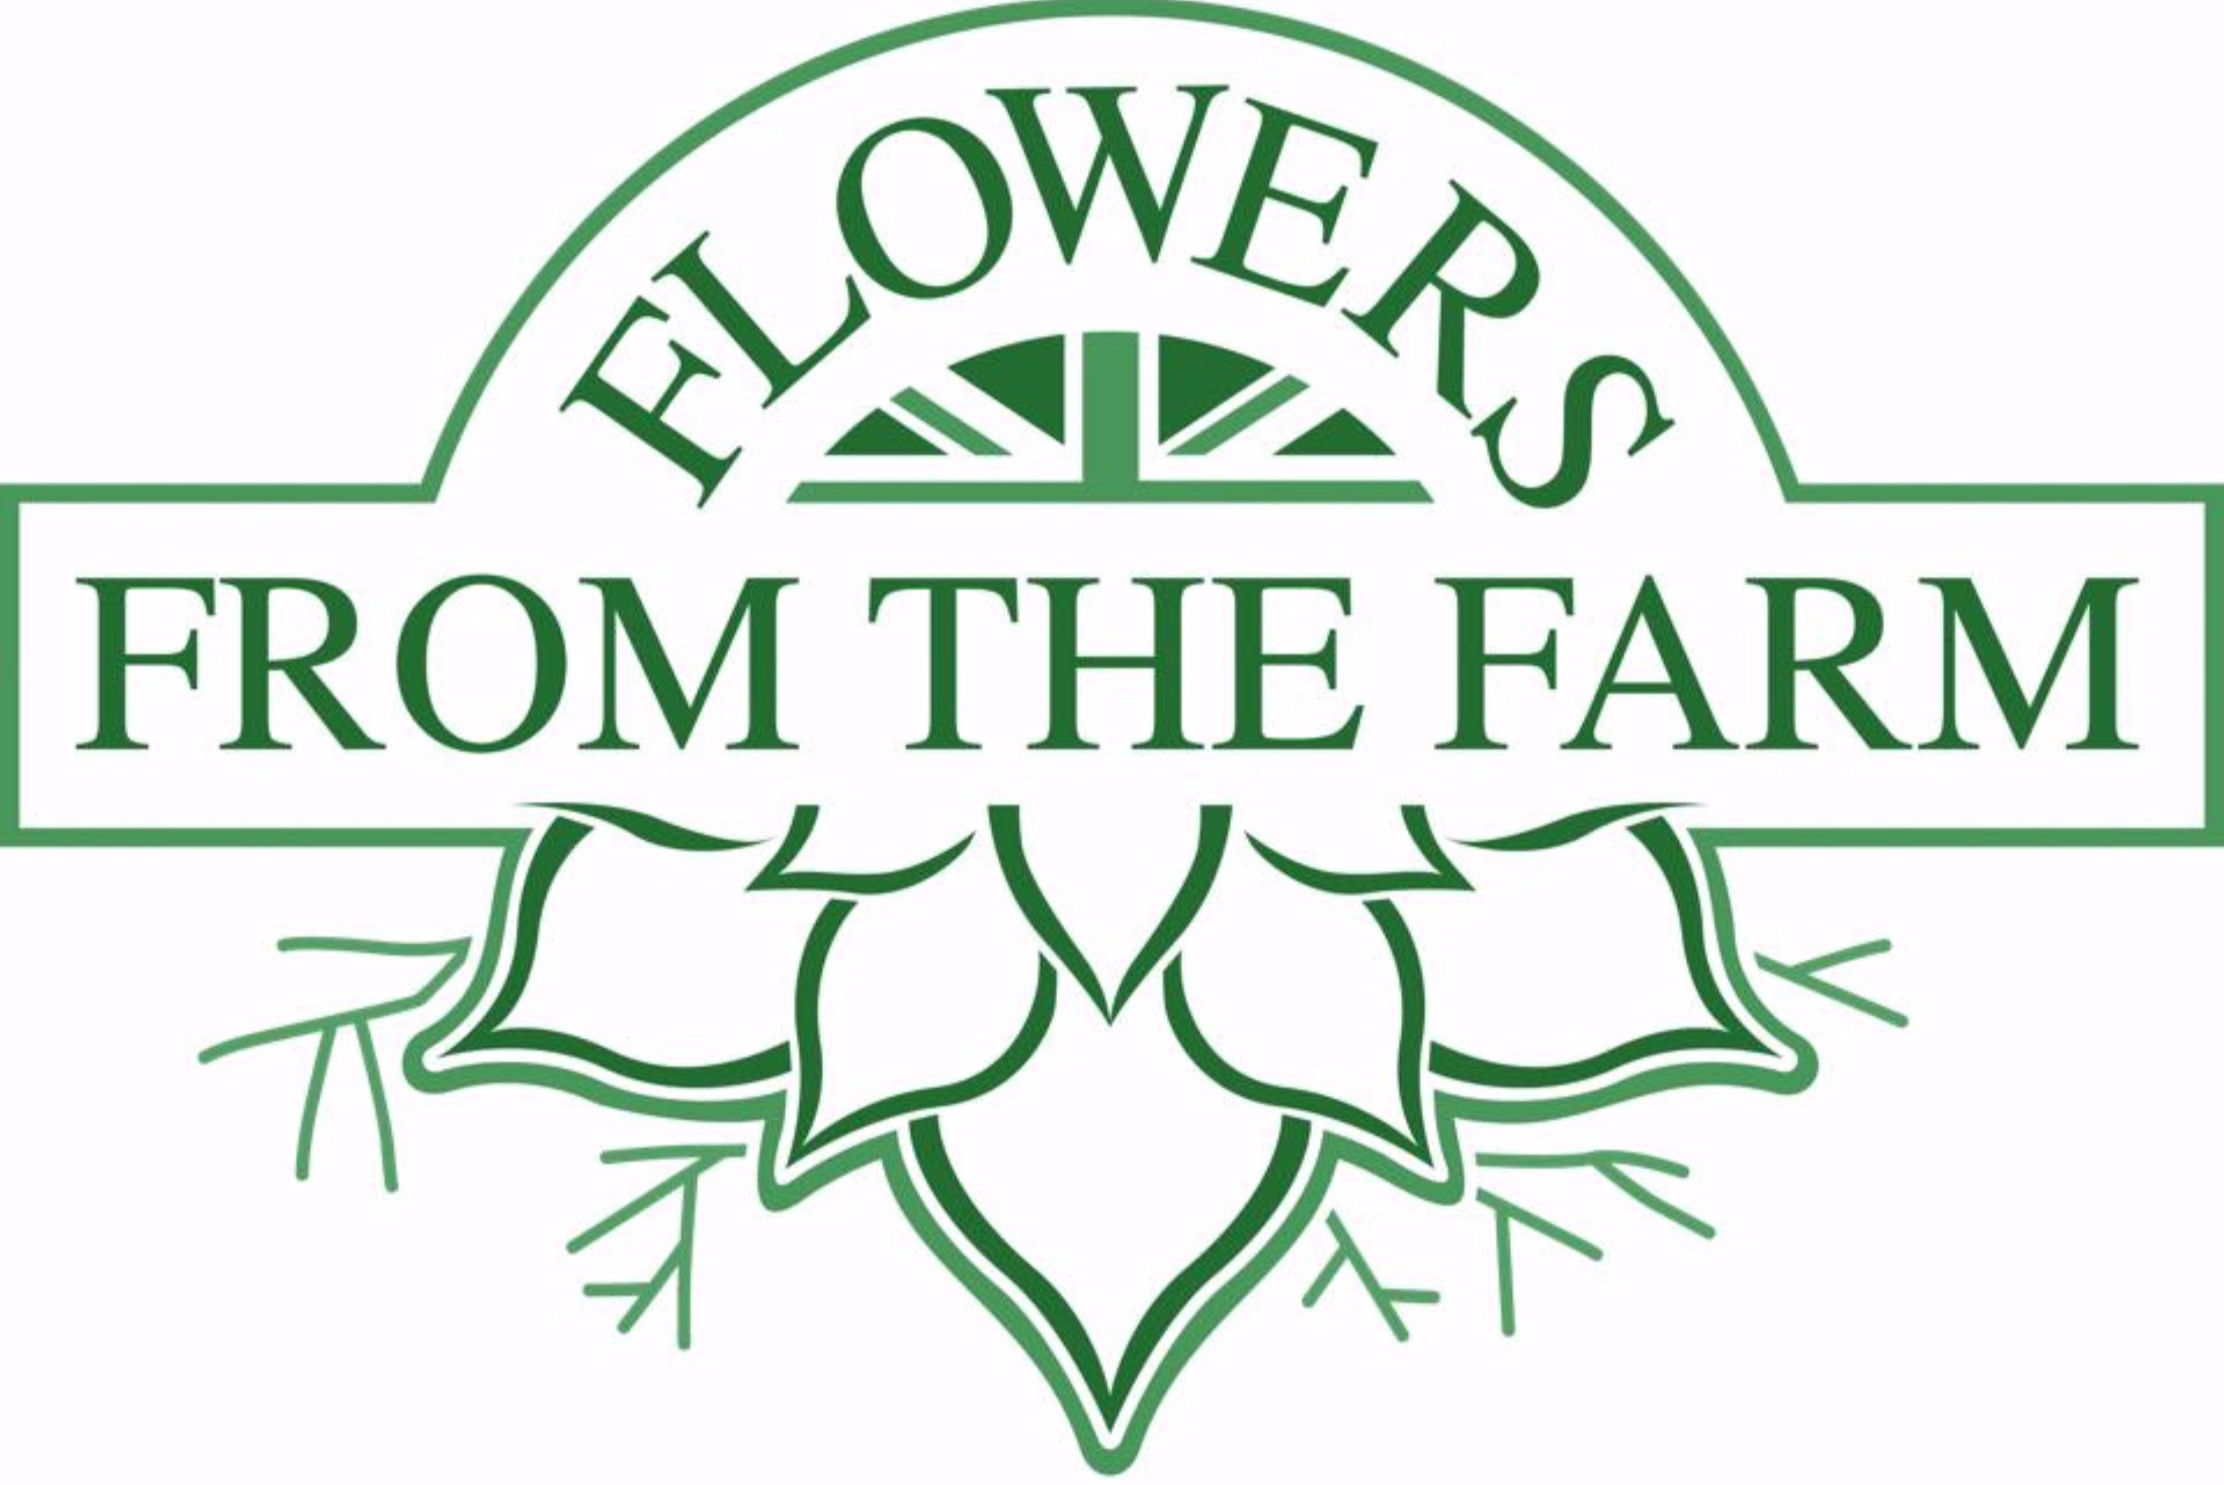 Proud member of Flowers From The Farm. - Growers and florists promoting greater use of British flowers.